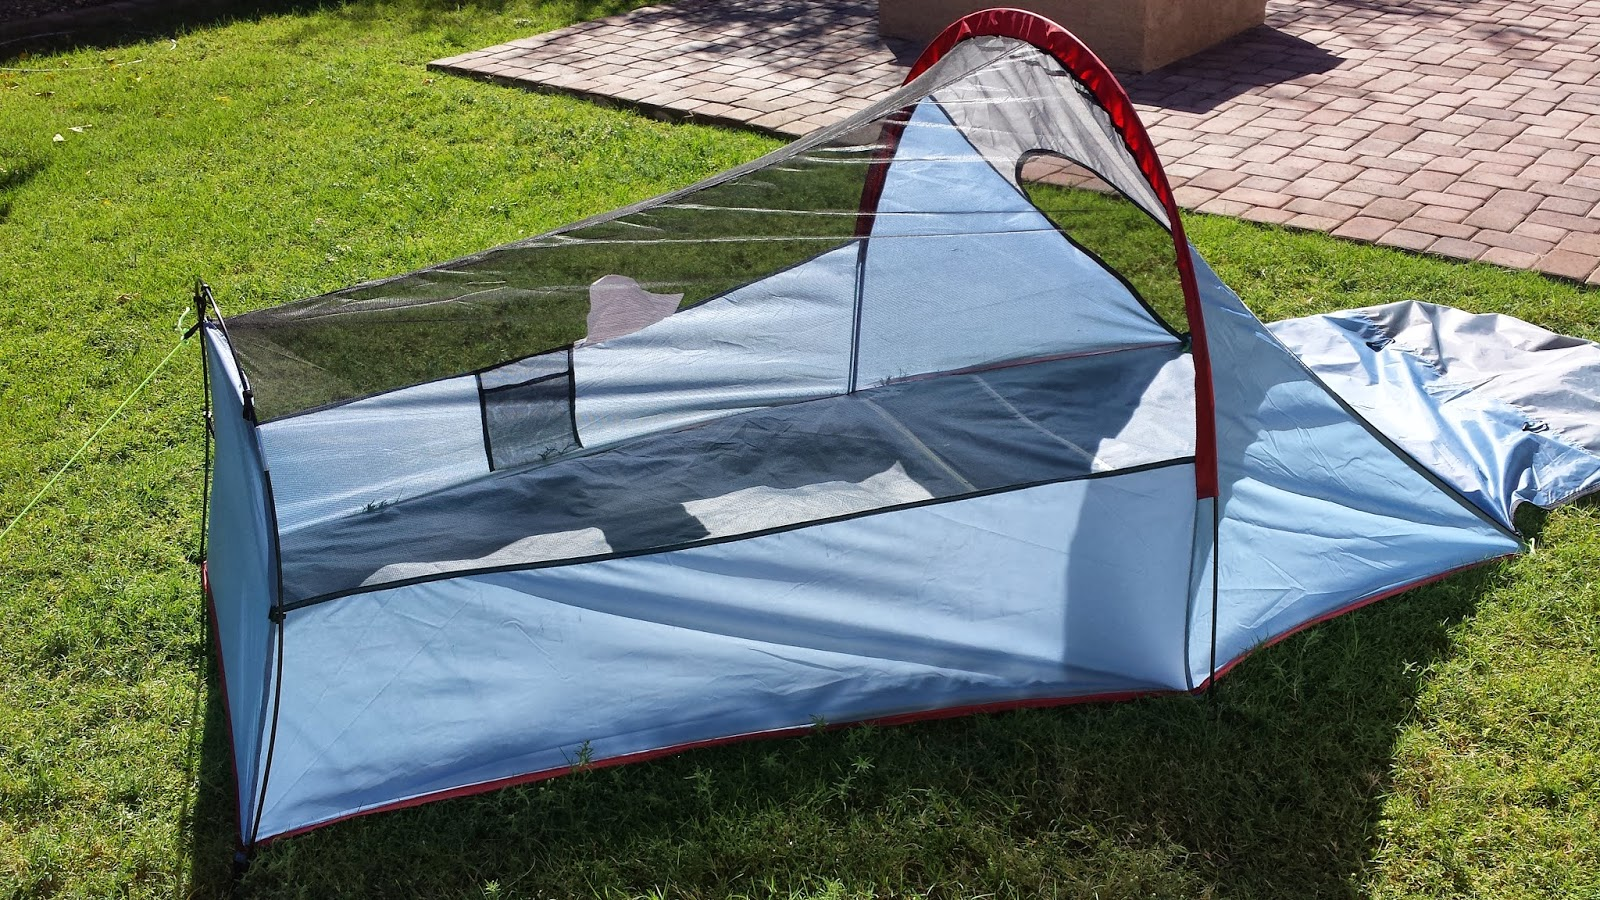 For a BIVY The Texsport Saguaro Tent Has Ample Headroom & Texsport Saguaro Bivy Shelter Tent: For a BIVY The Texsport ...